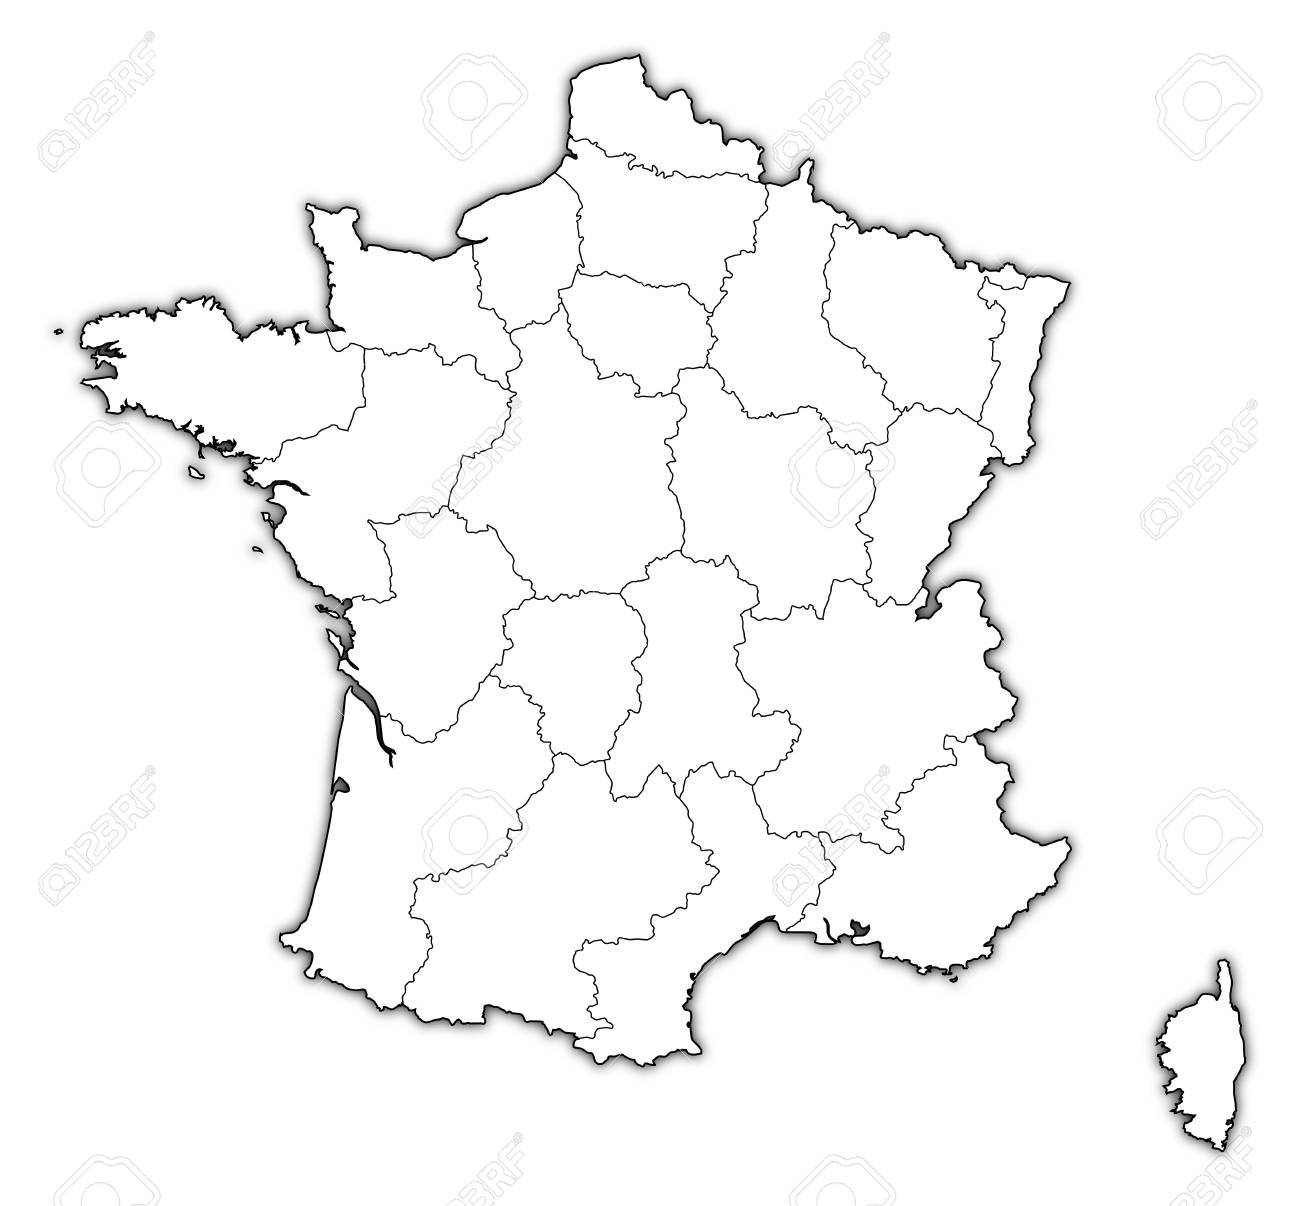 Political Map Of France With The Several Regions Royalty Free Cliparts Vectors And Stock Illustration Image 11566348